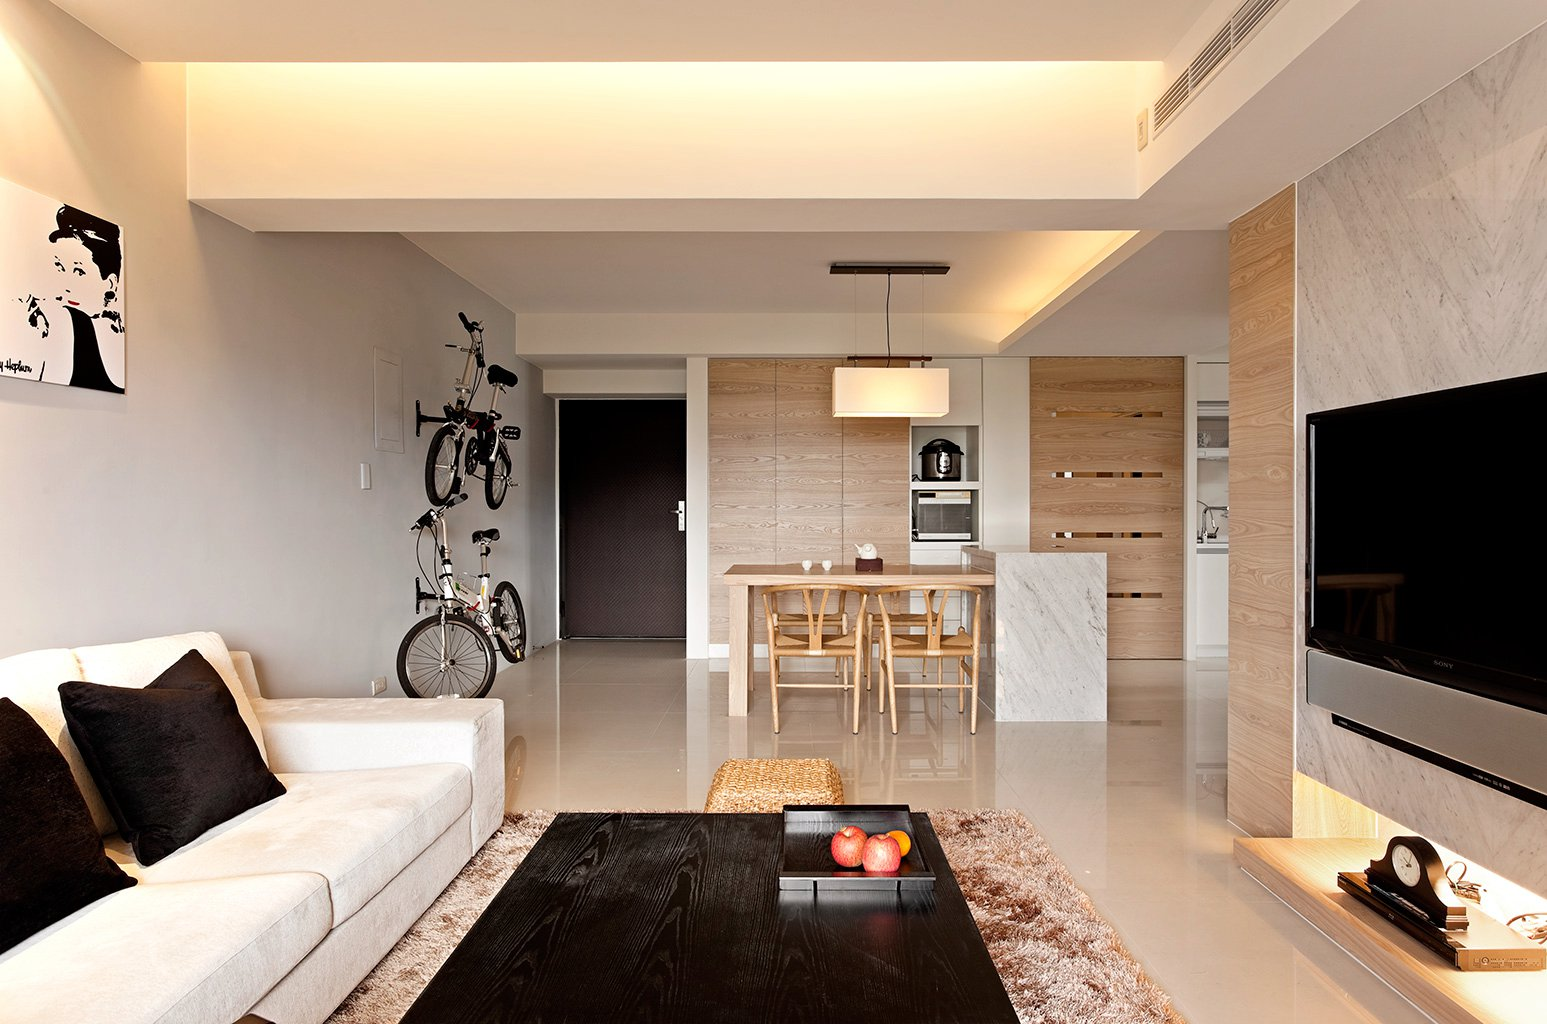 Modern minimalist decor with a homey flow for Minimalist decor apartment